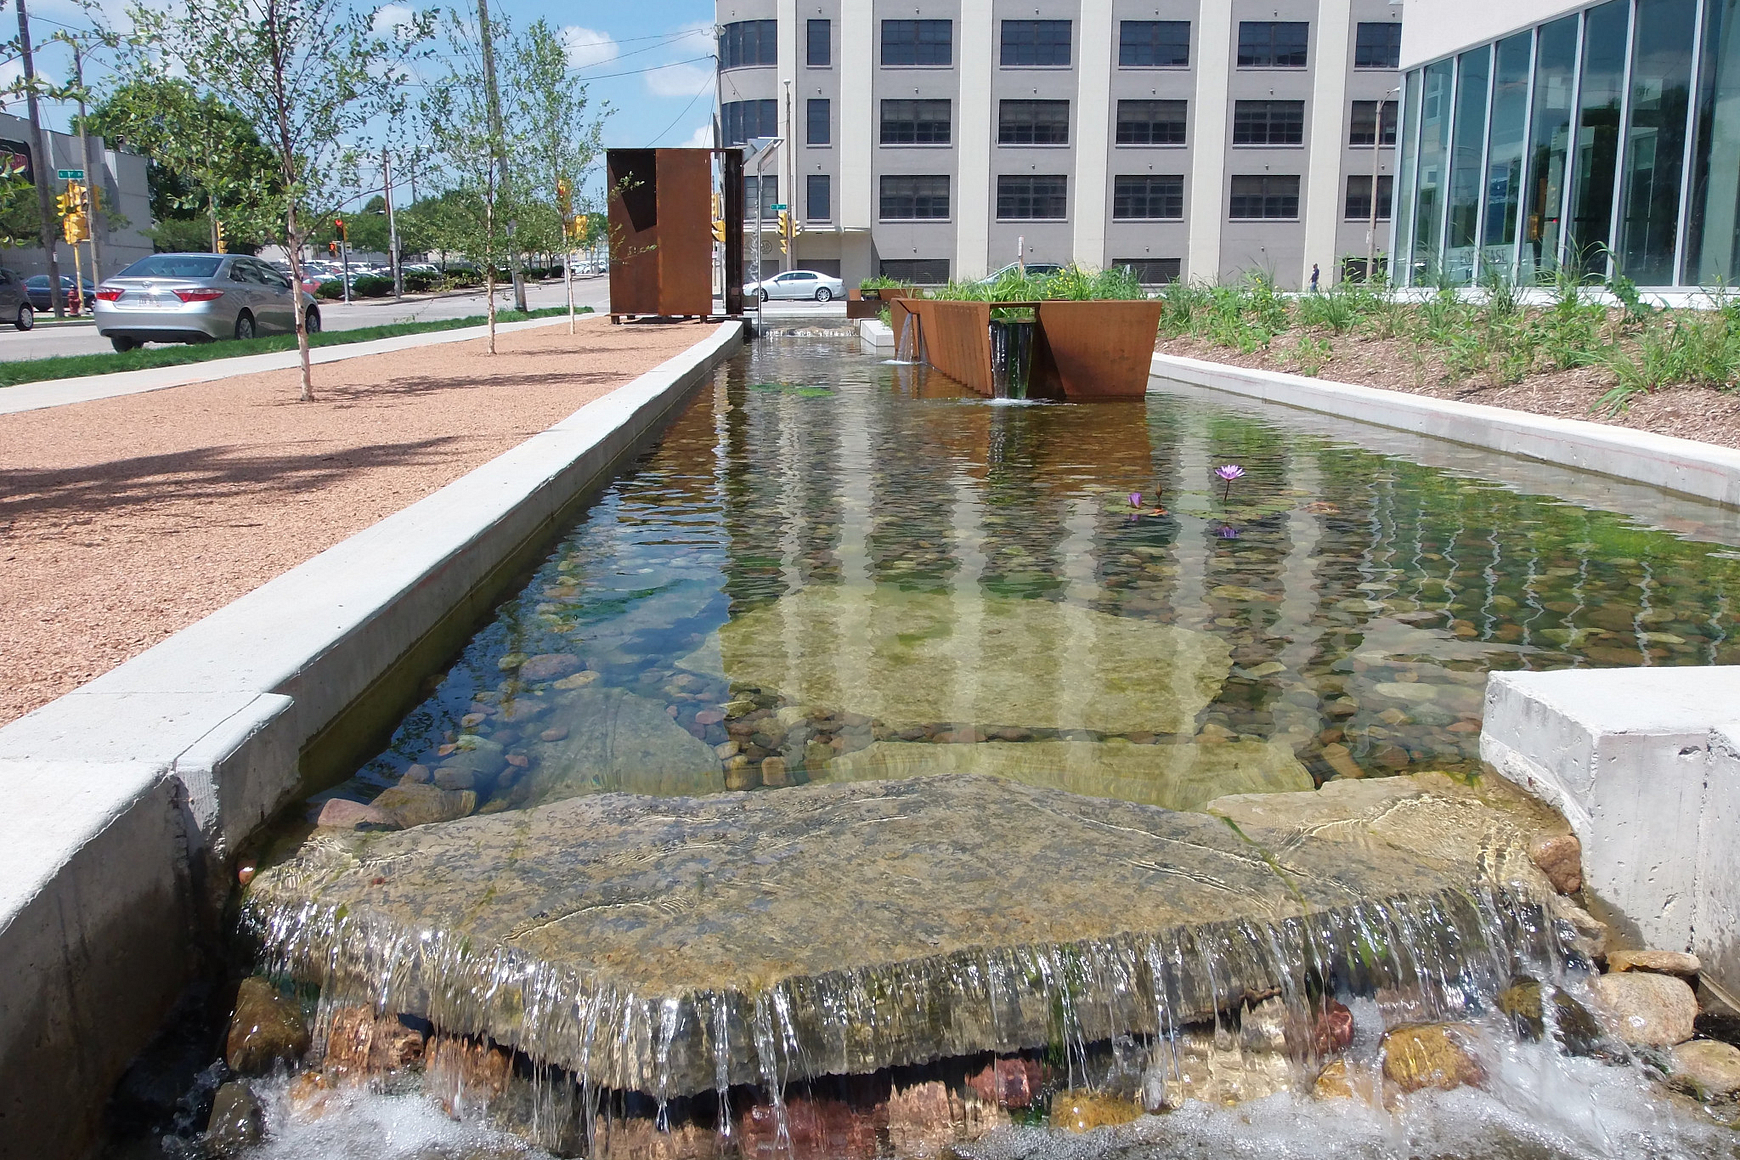 Water spilling over a rock in an urban landscaped setting